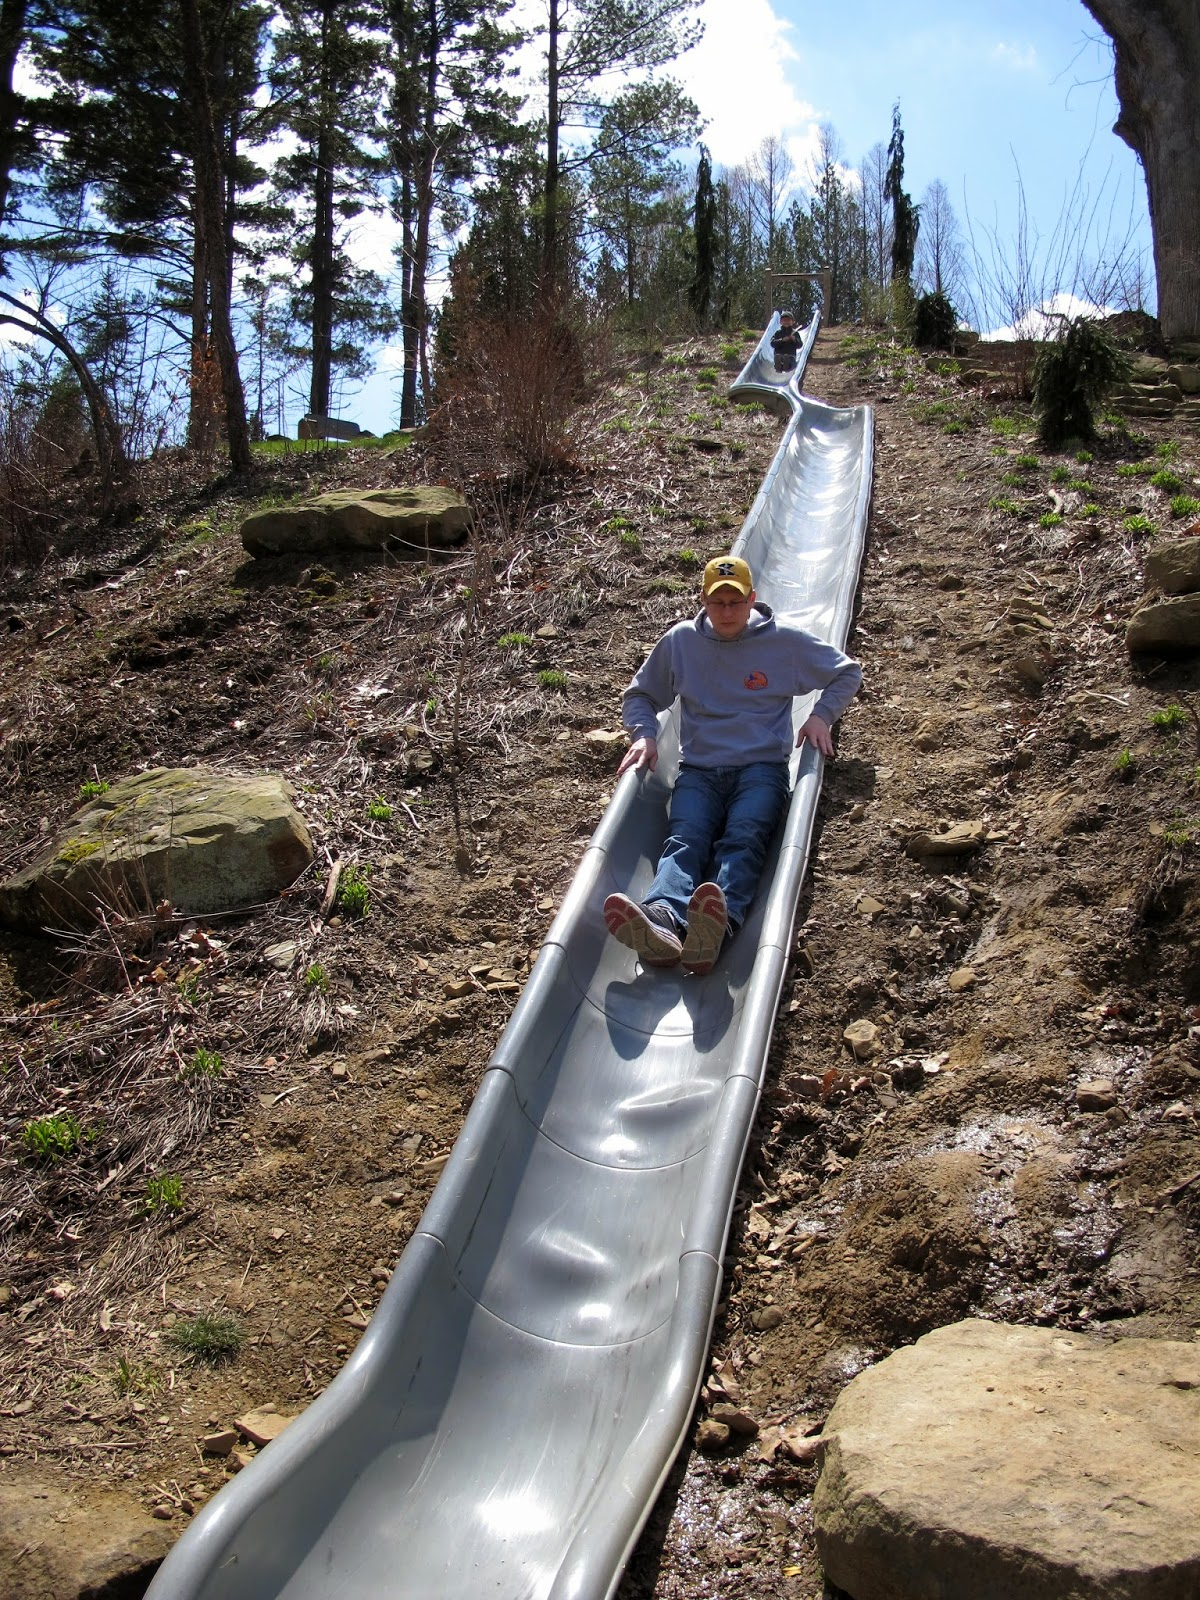 Daddy on the Slide